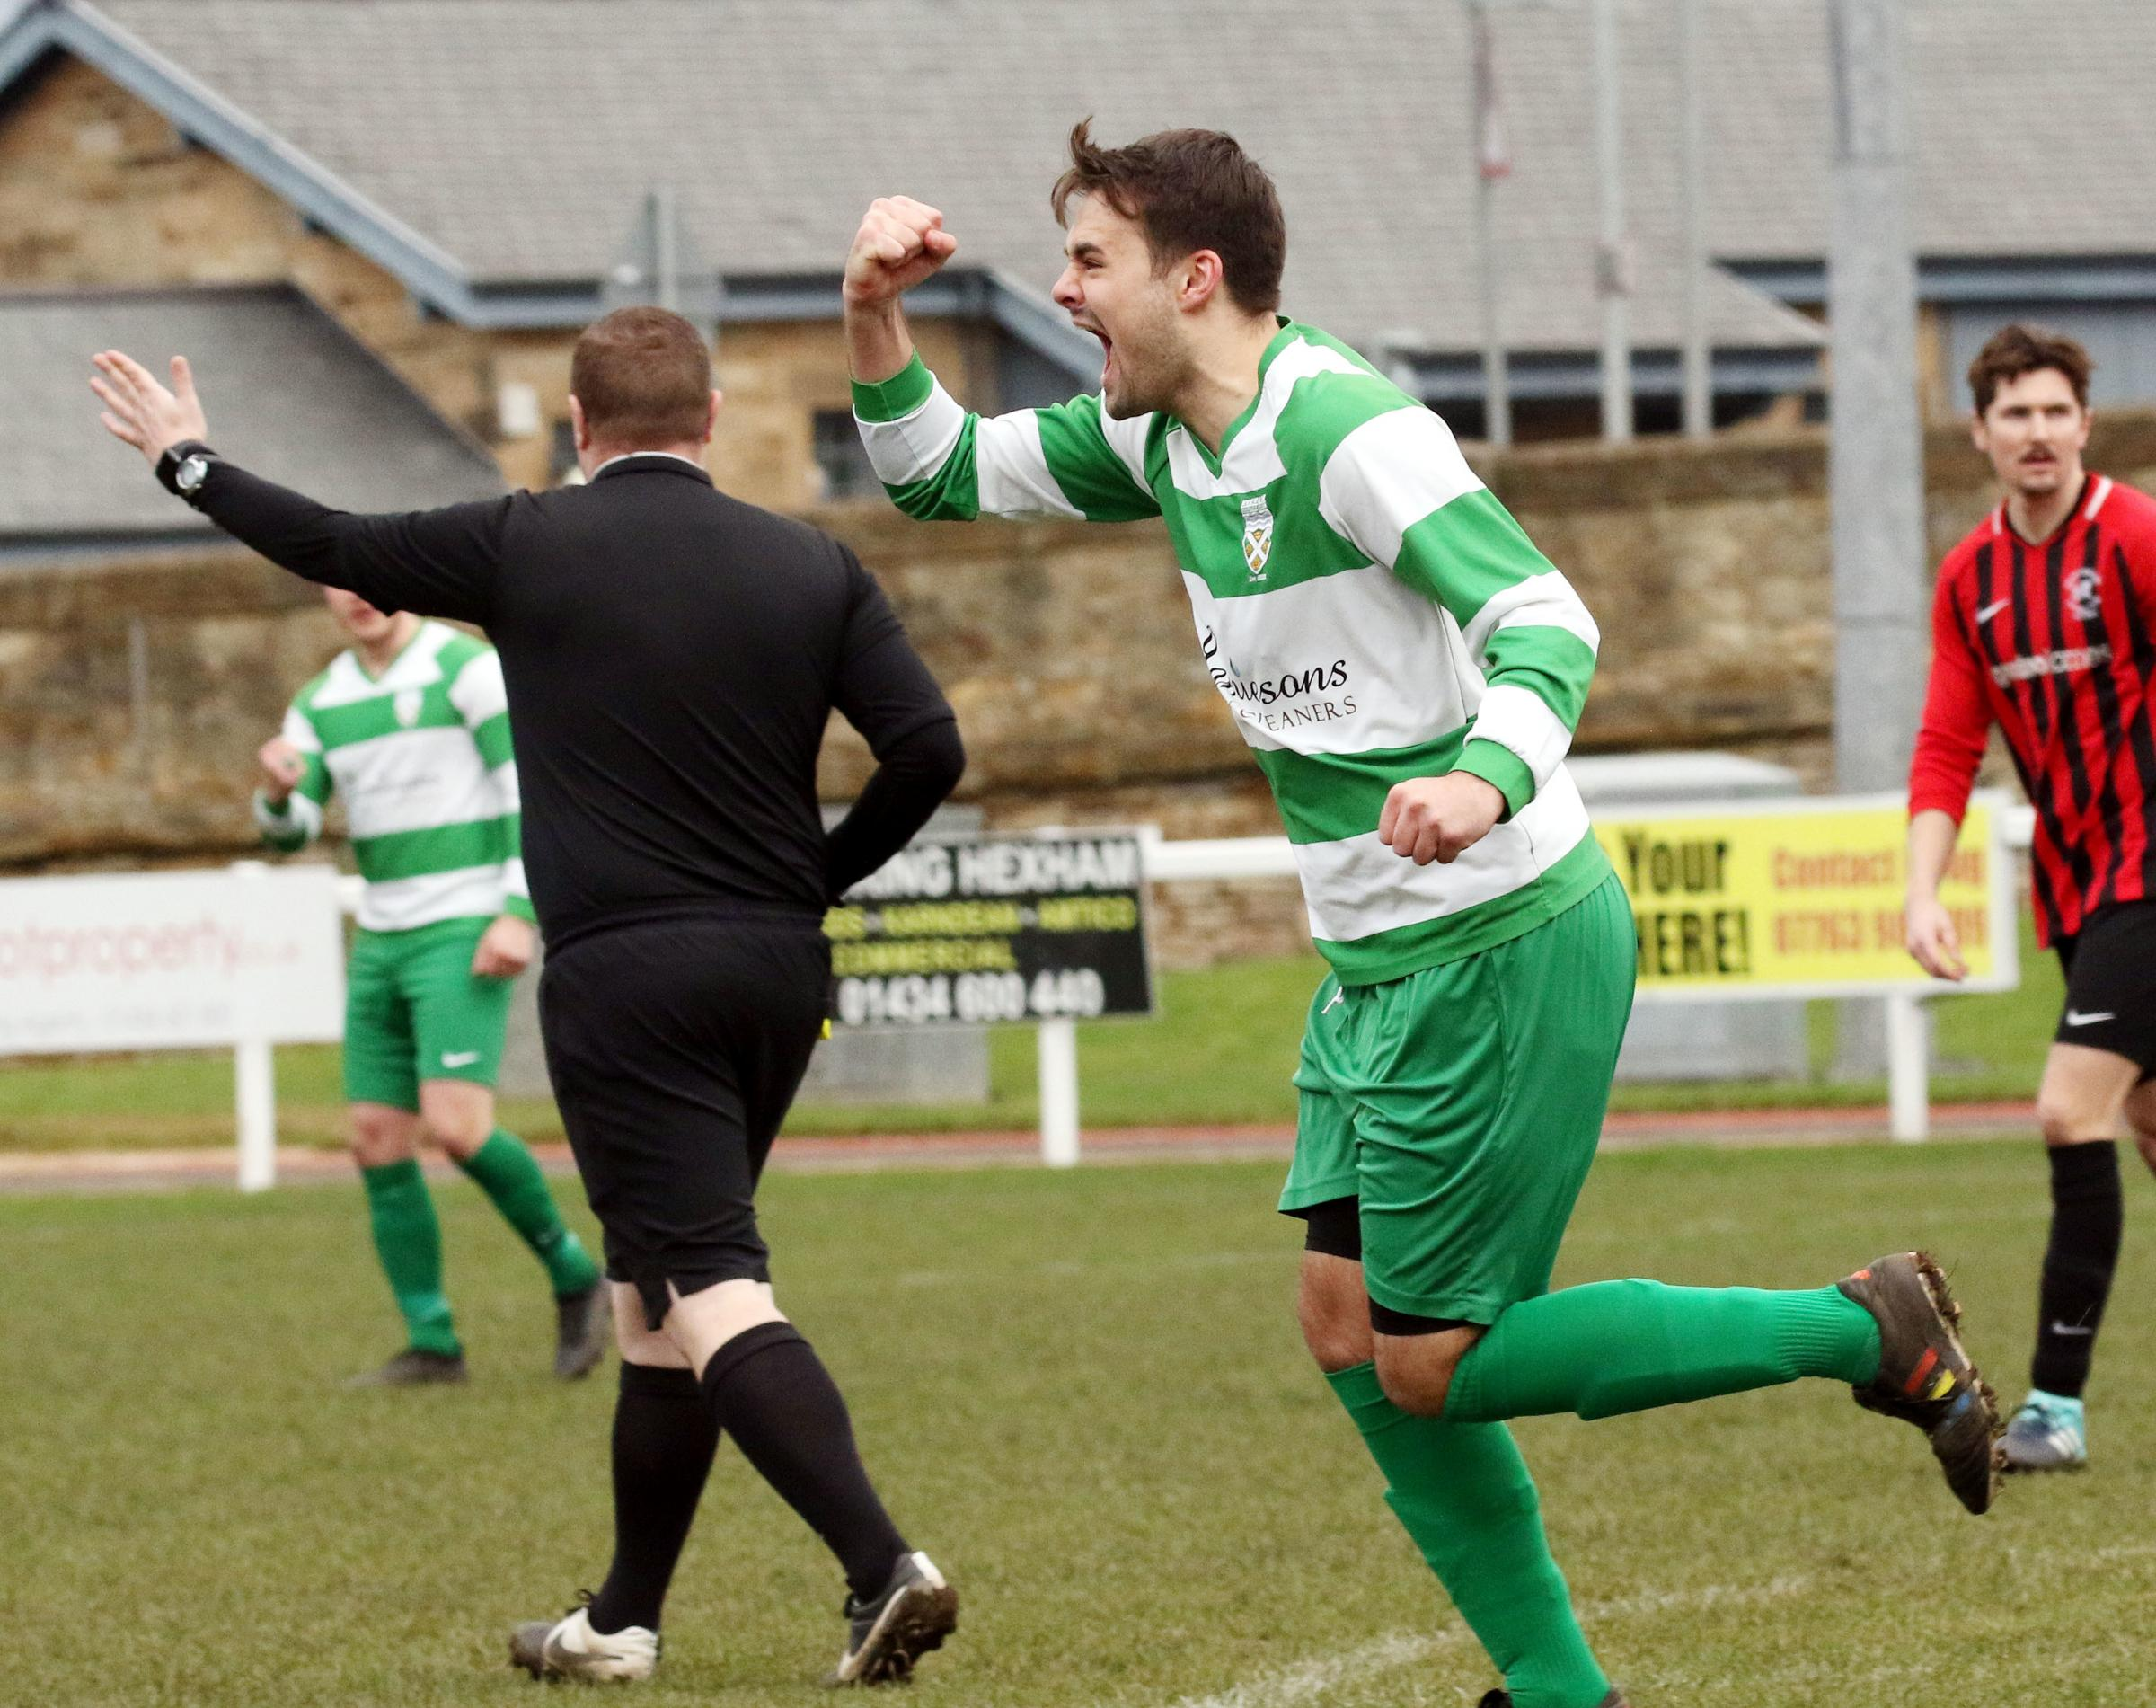 A referee signals to confirm Sam Mannion's recent goal for Hexham against Prudhoe. Photo: PAUL NORRIS